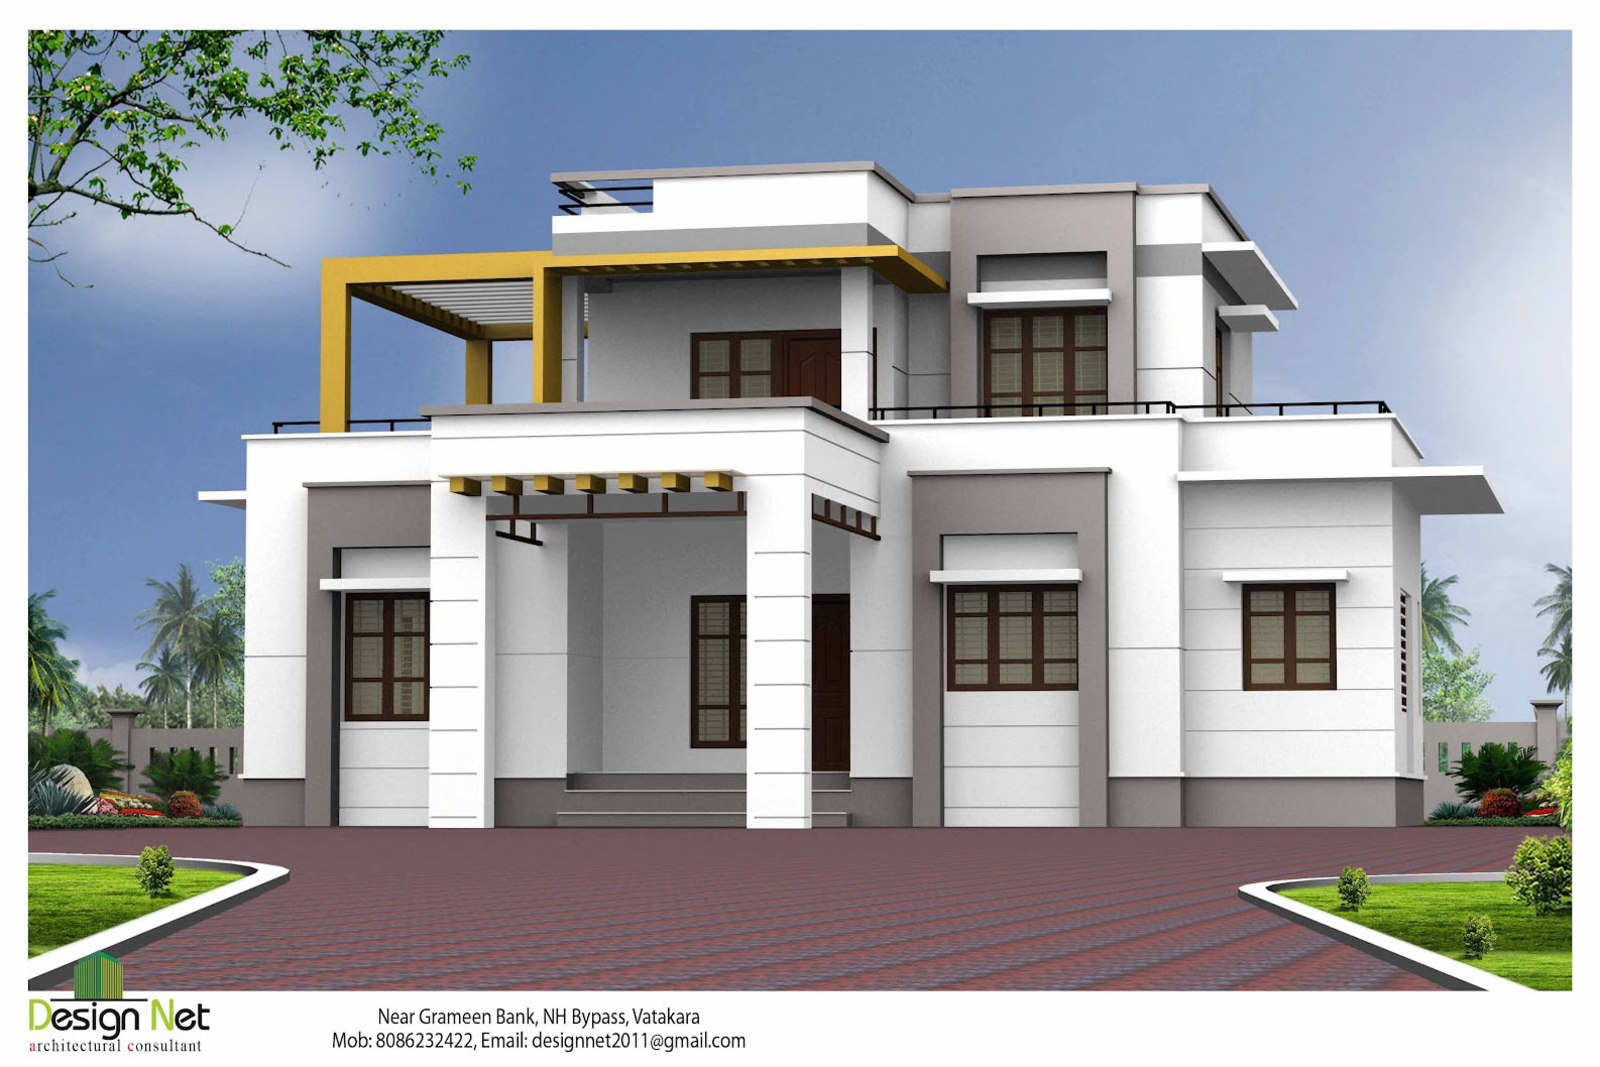 Image gallery outside house designs for Home designs exterior